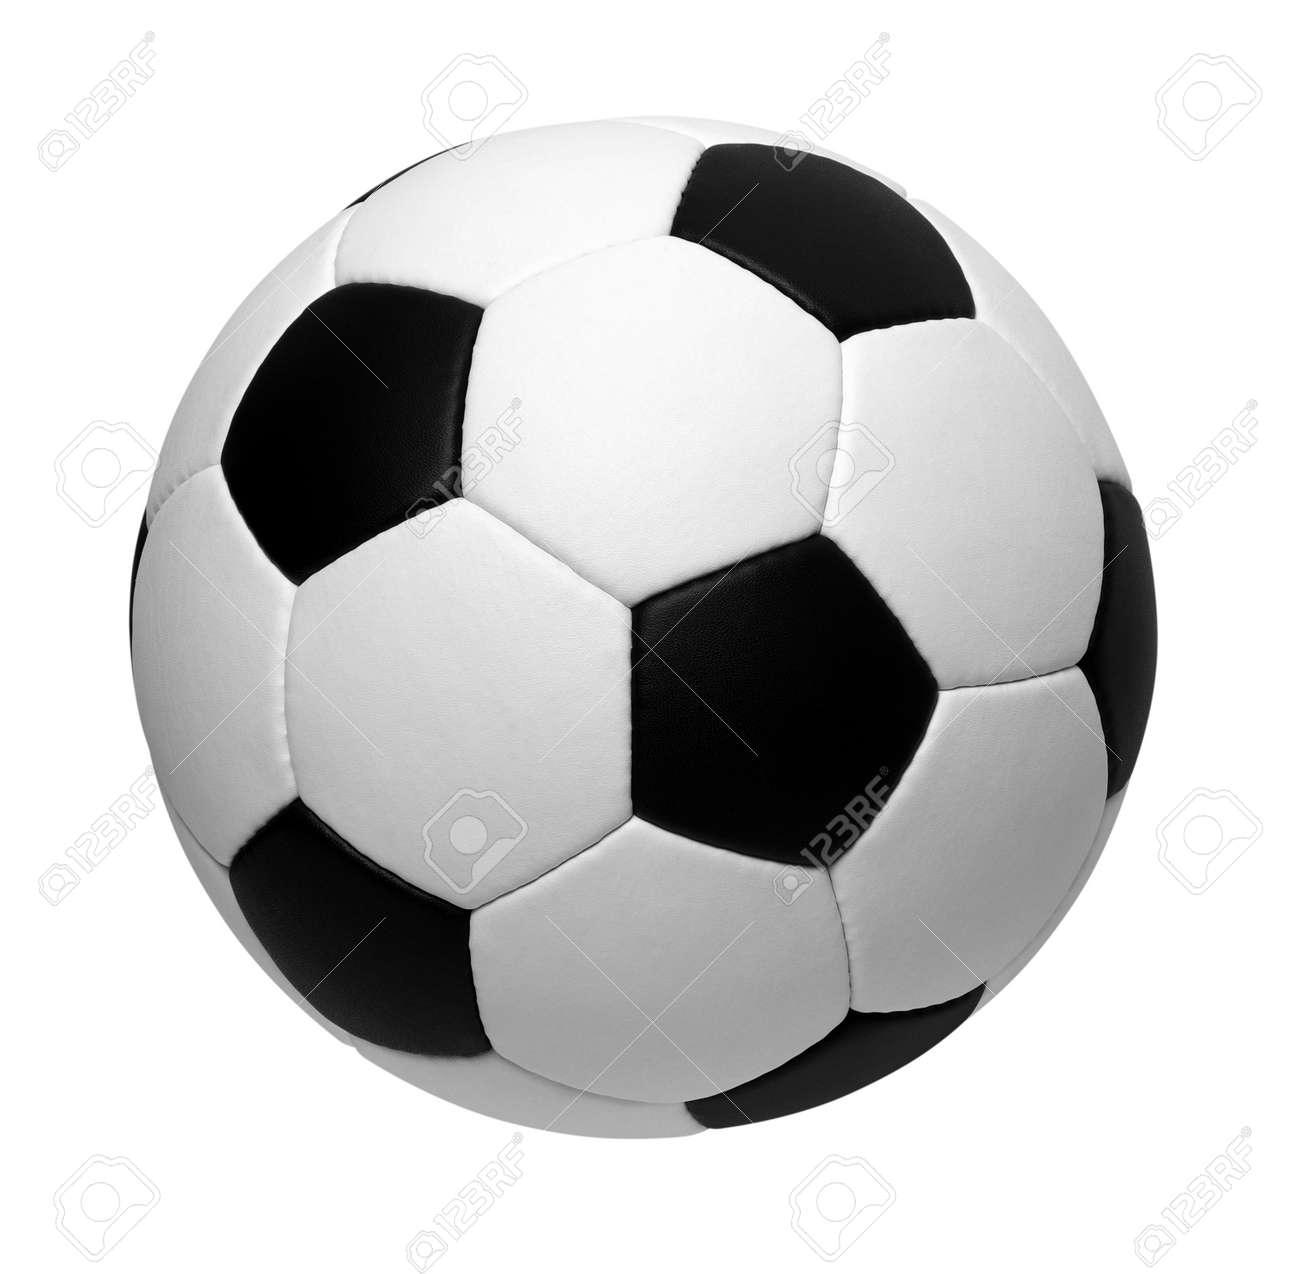 soccer ball isolated on white Banque d'images - 49026050